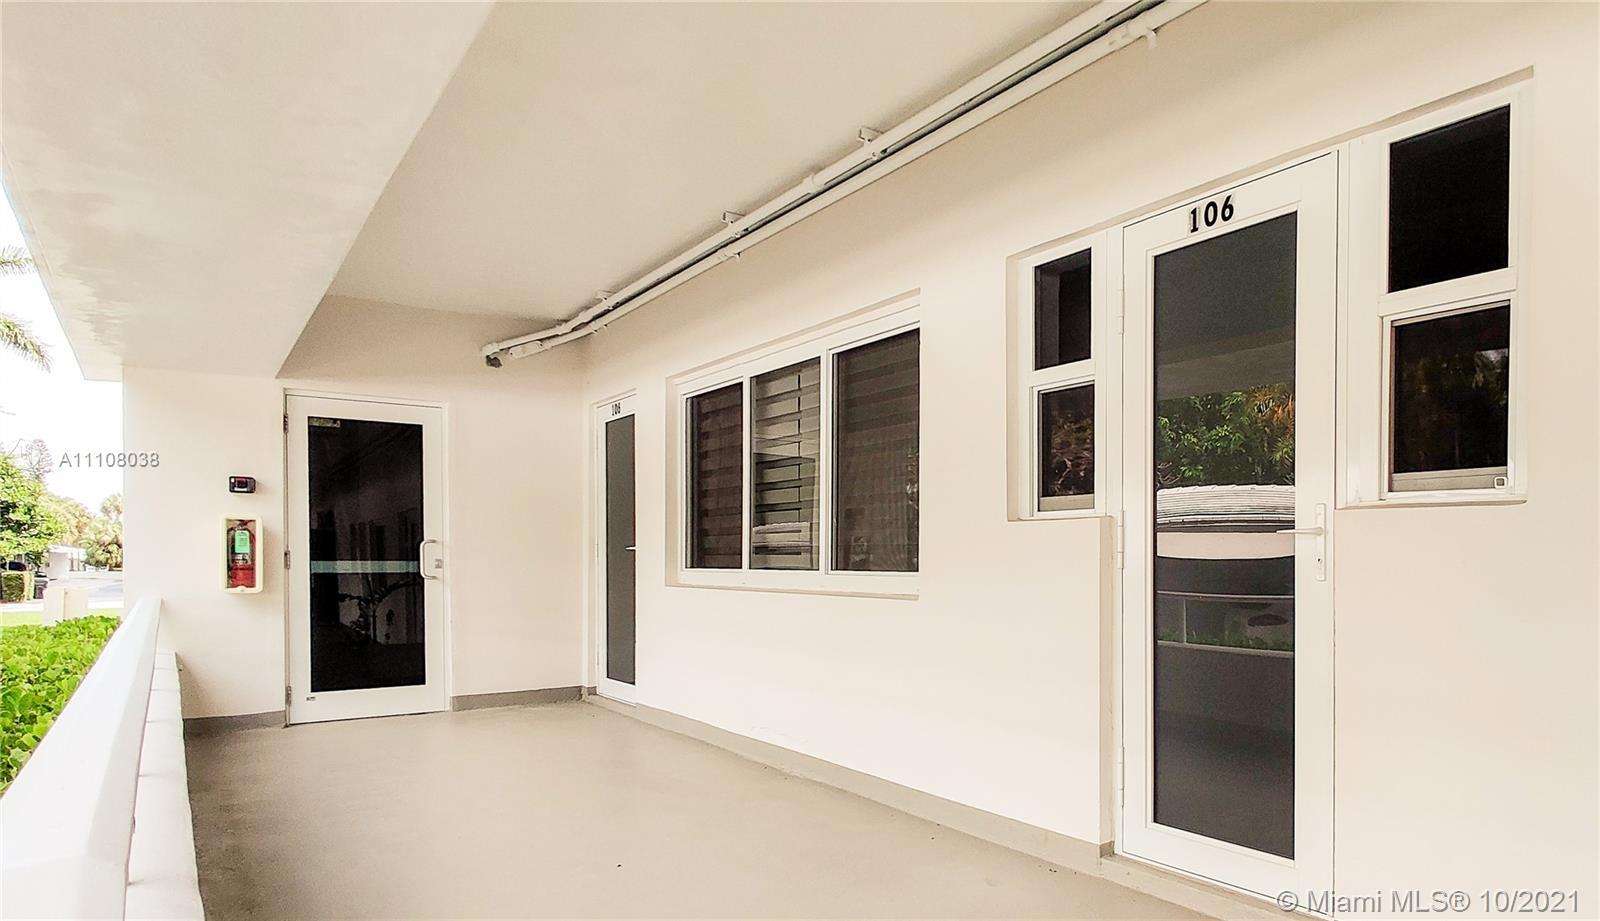 Perfect beach getaway in exclusive Bal Harbour! 2BD/2BA apartment is across the street from the ocea